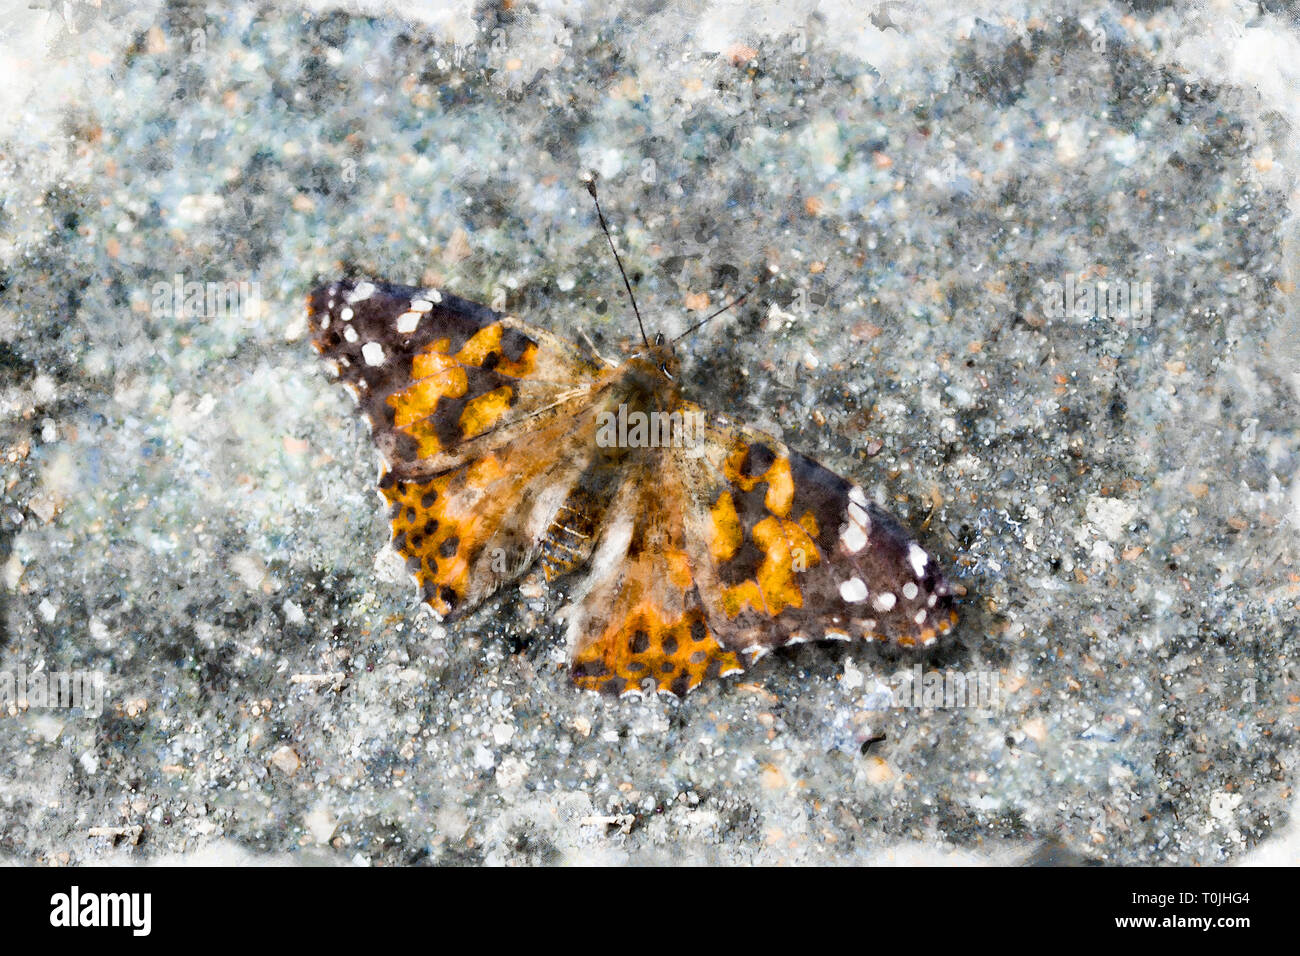 Painted Lady butterfly basking on a paving stone Stock Photo